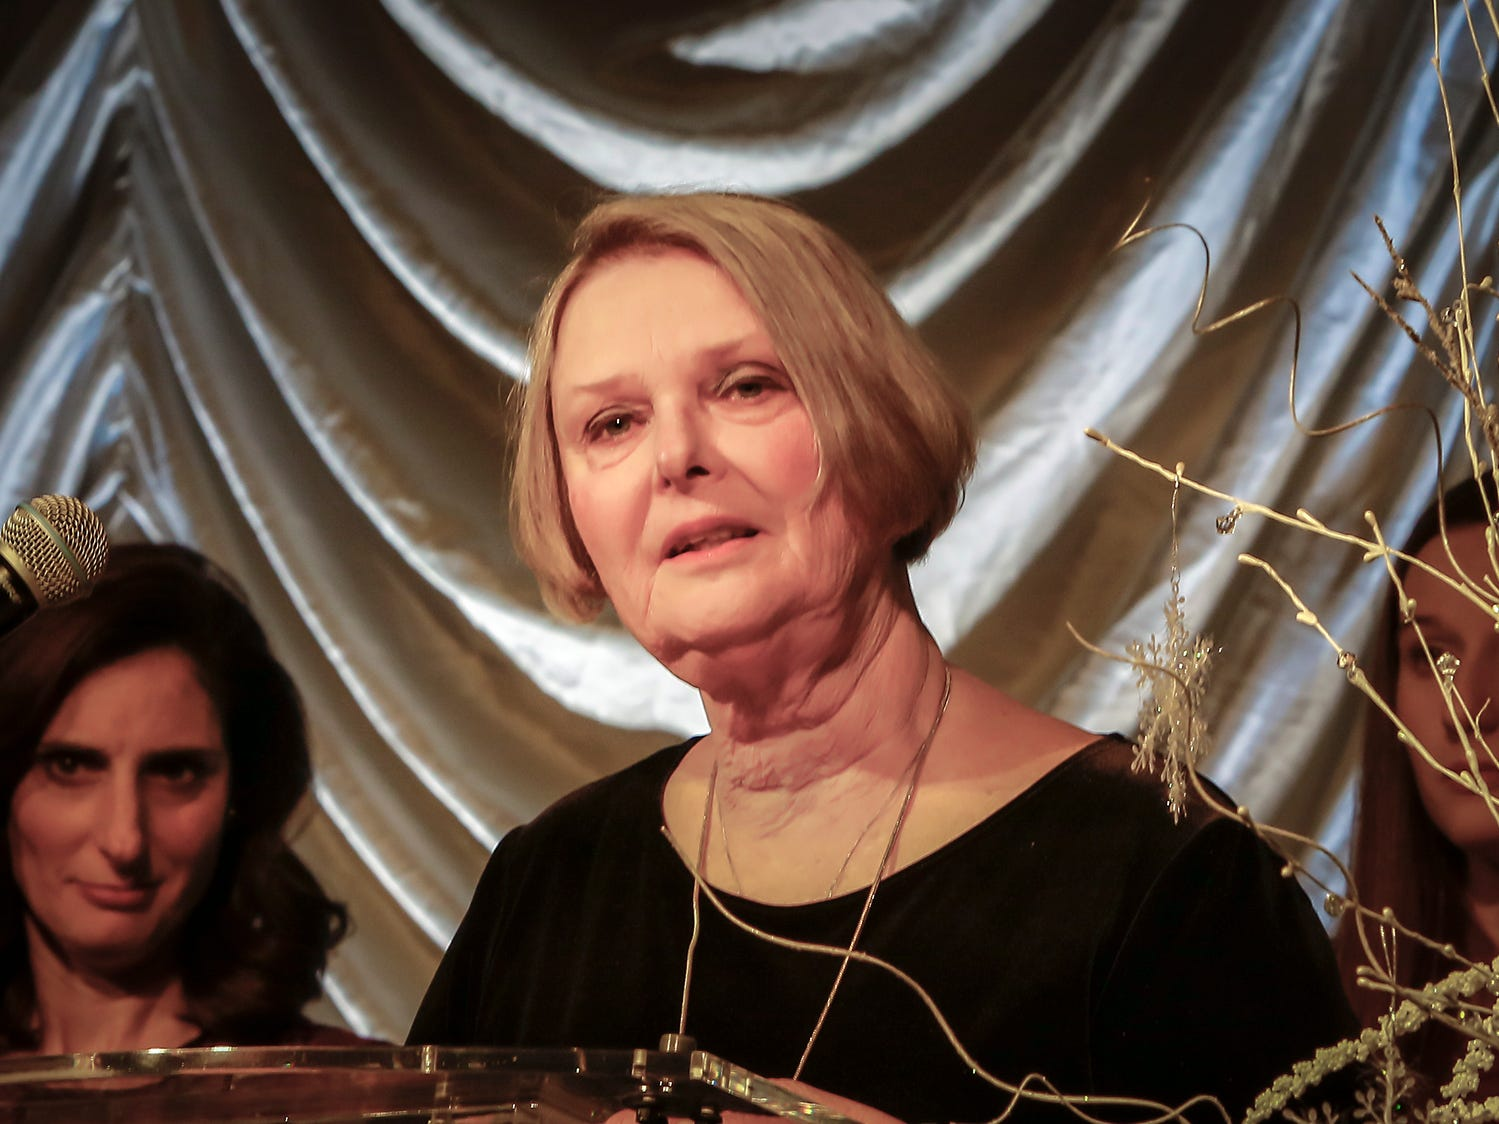 Susan Young speaks at the 2019 Excellence in Education Gala, hosted by the City Schools Foundation on Friday, Jan. 25, 2019 at Stones River Country Club in Murfreesboro. Her husband, Doug Young, was honored posthumously at the event.